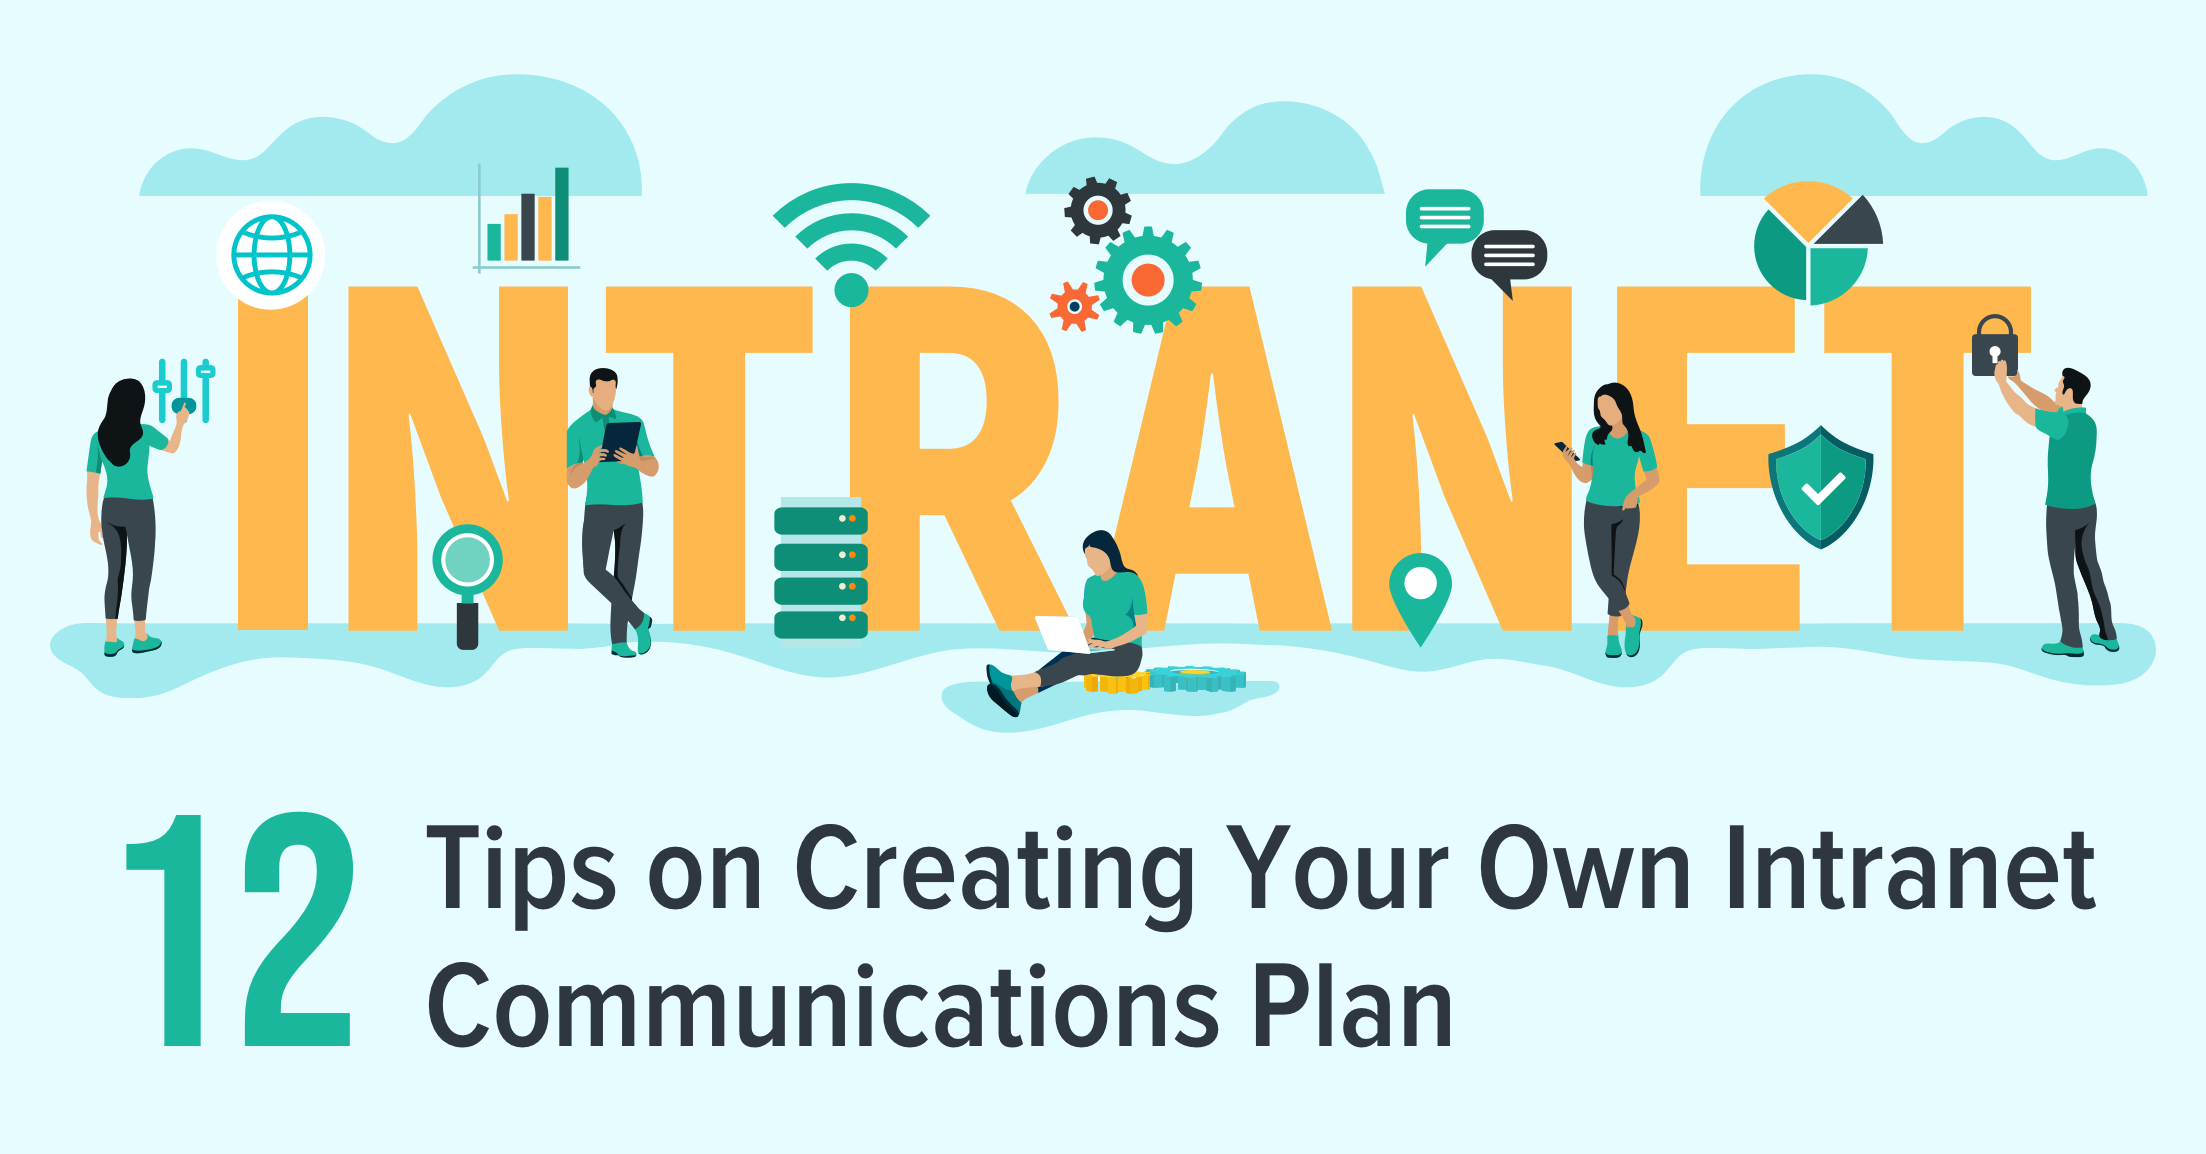 12 Tips on Creating Your Own Intranet Communications Plan